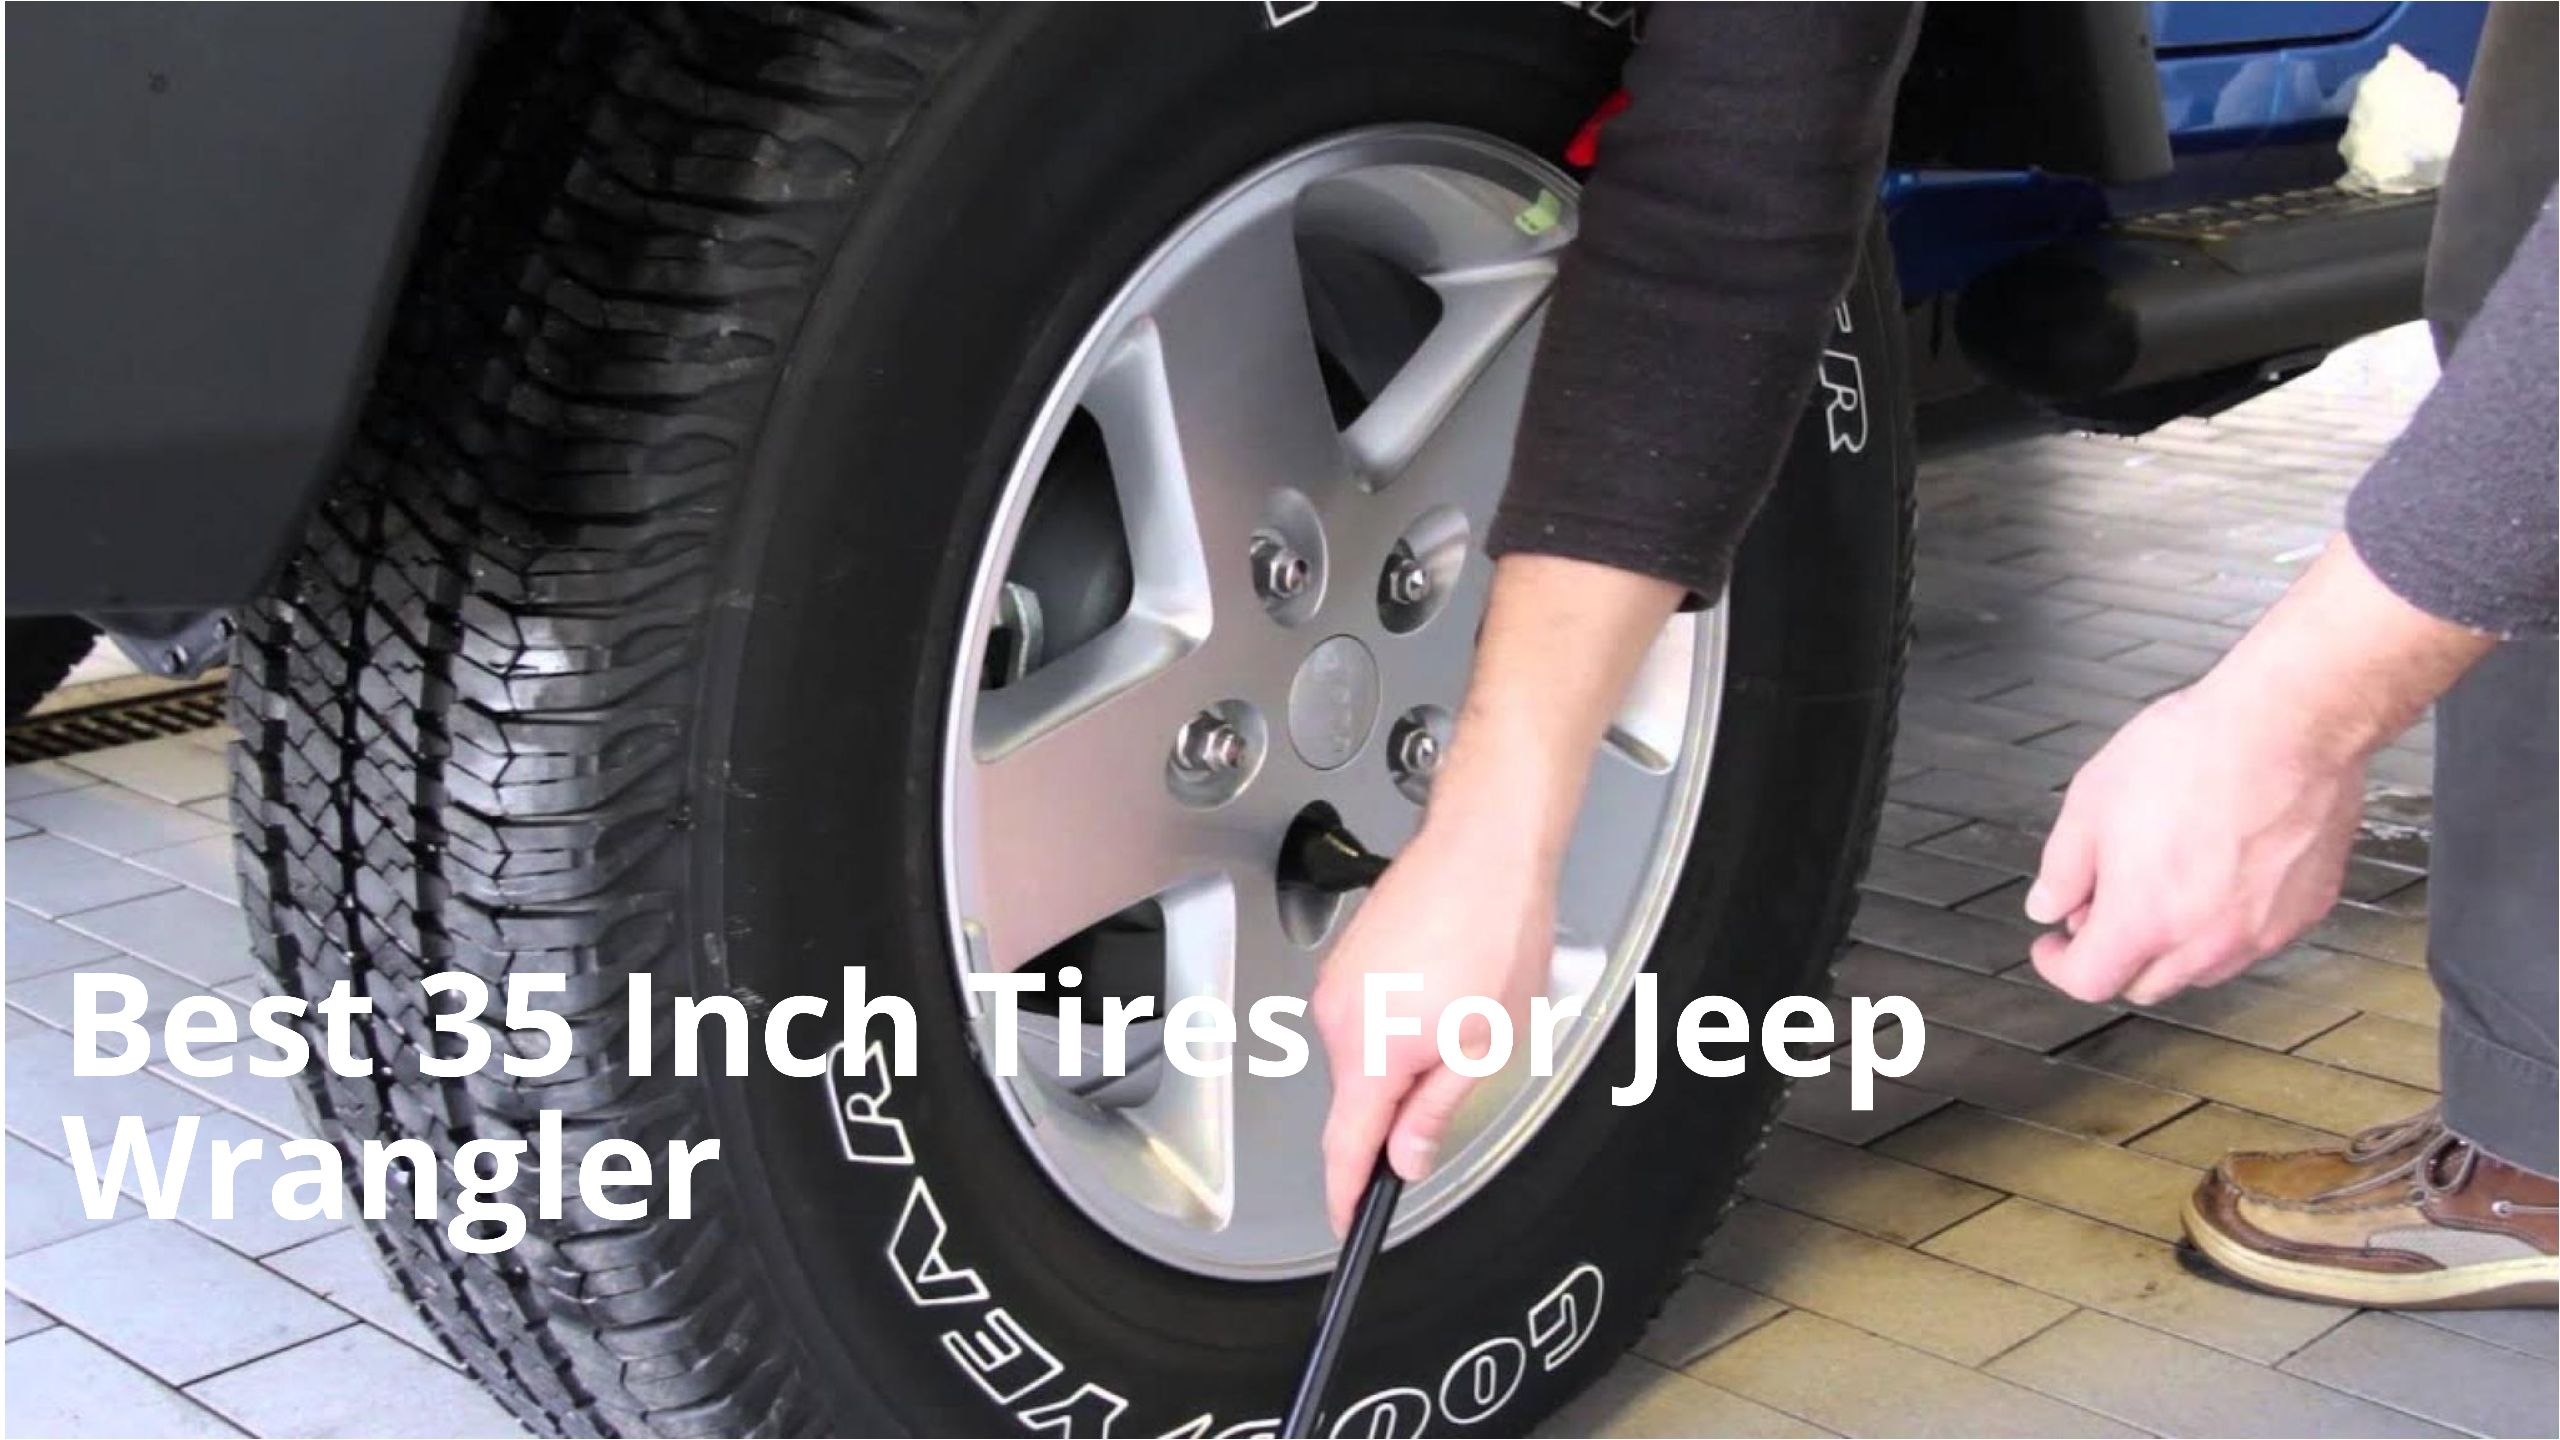 Best 35 Inch Tires For Jeep Wrangler